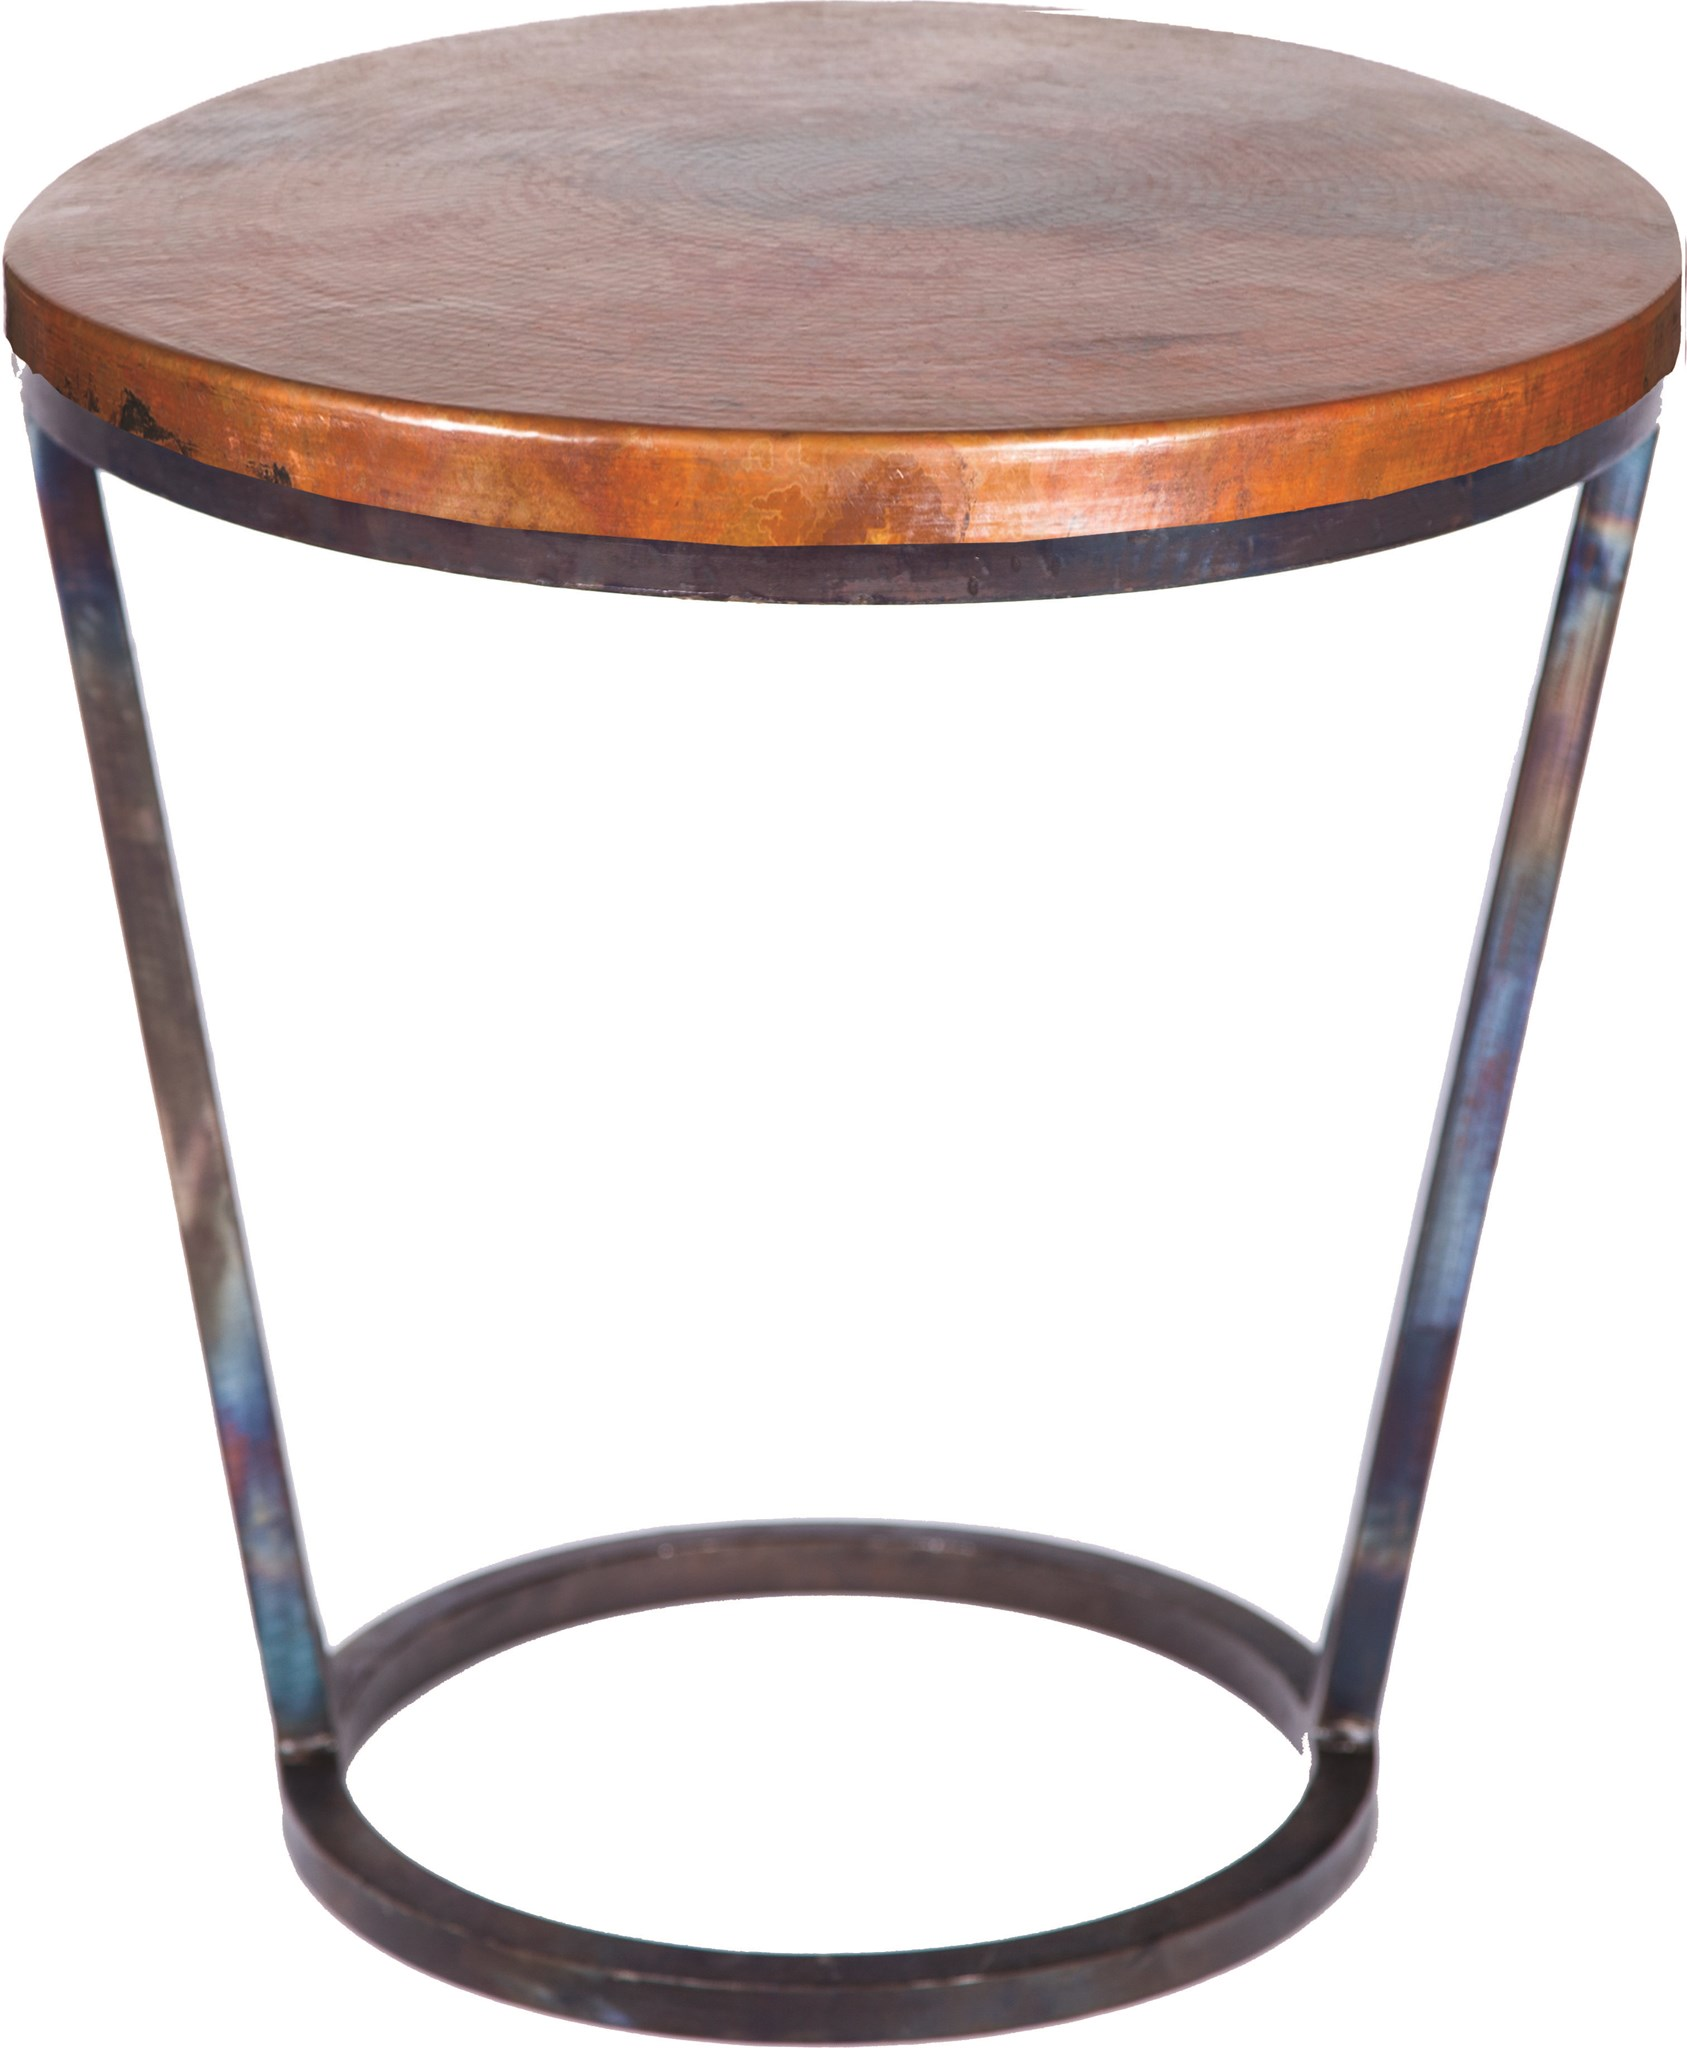 Accent Table With Hammered Copper Top